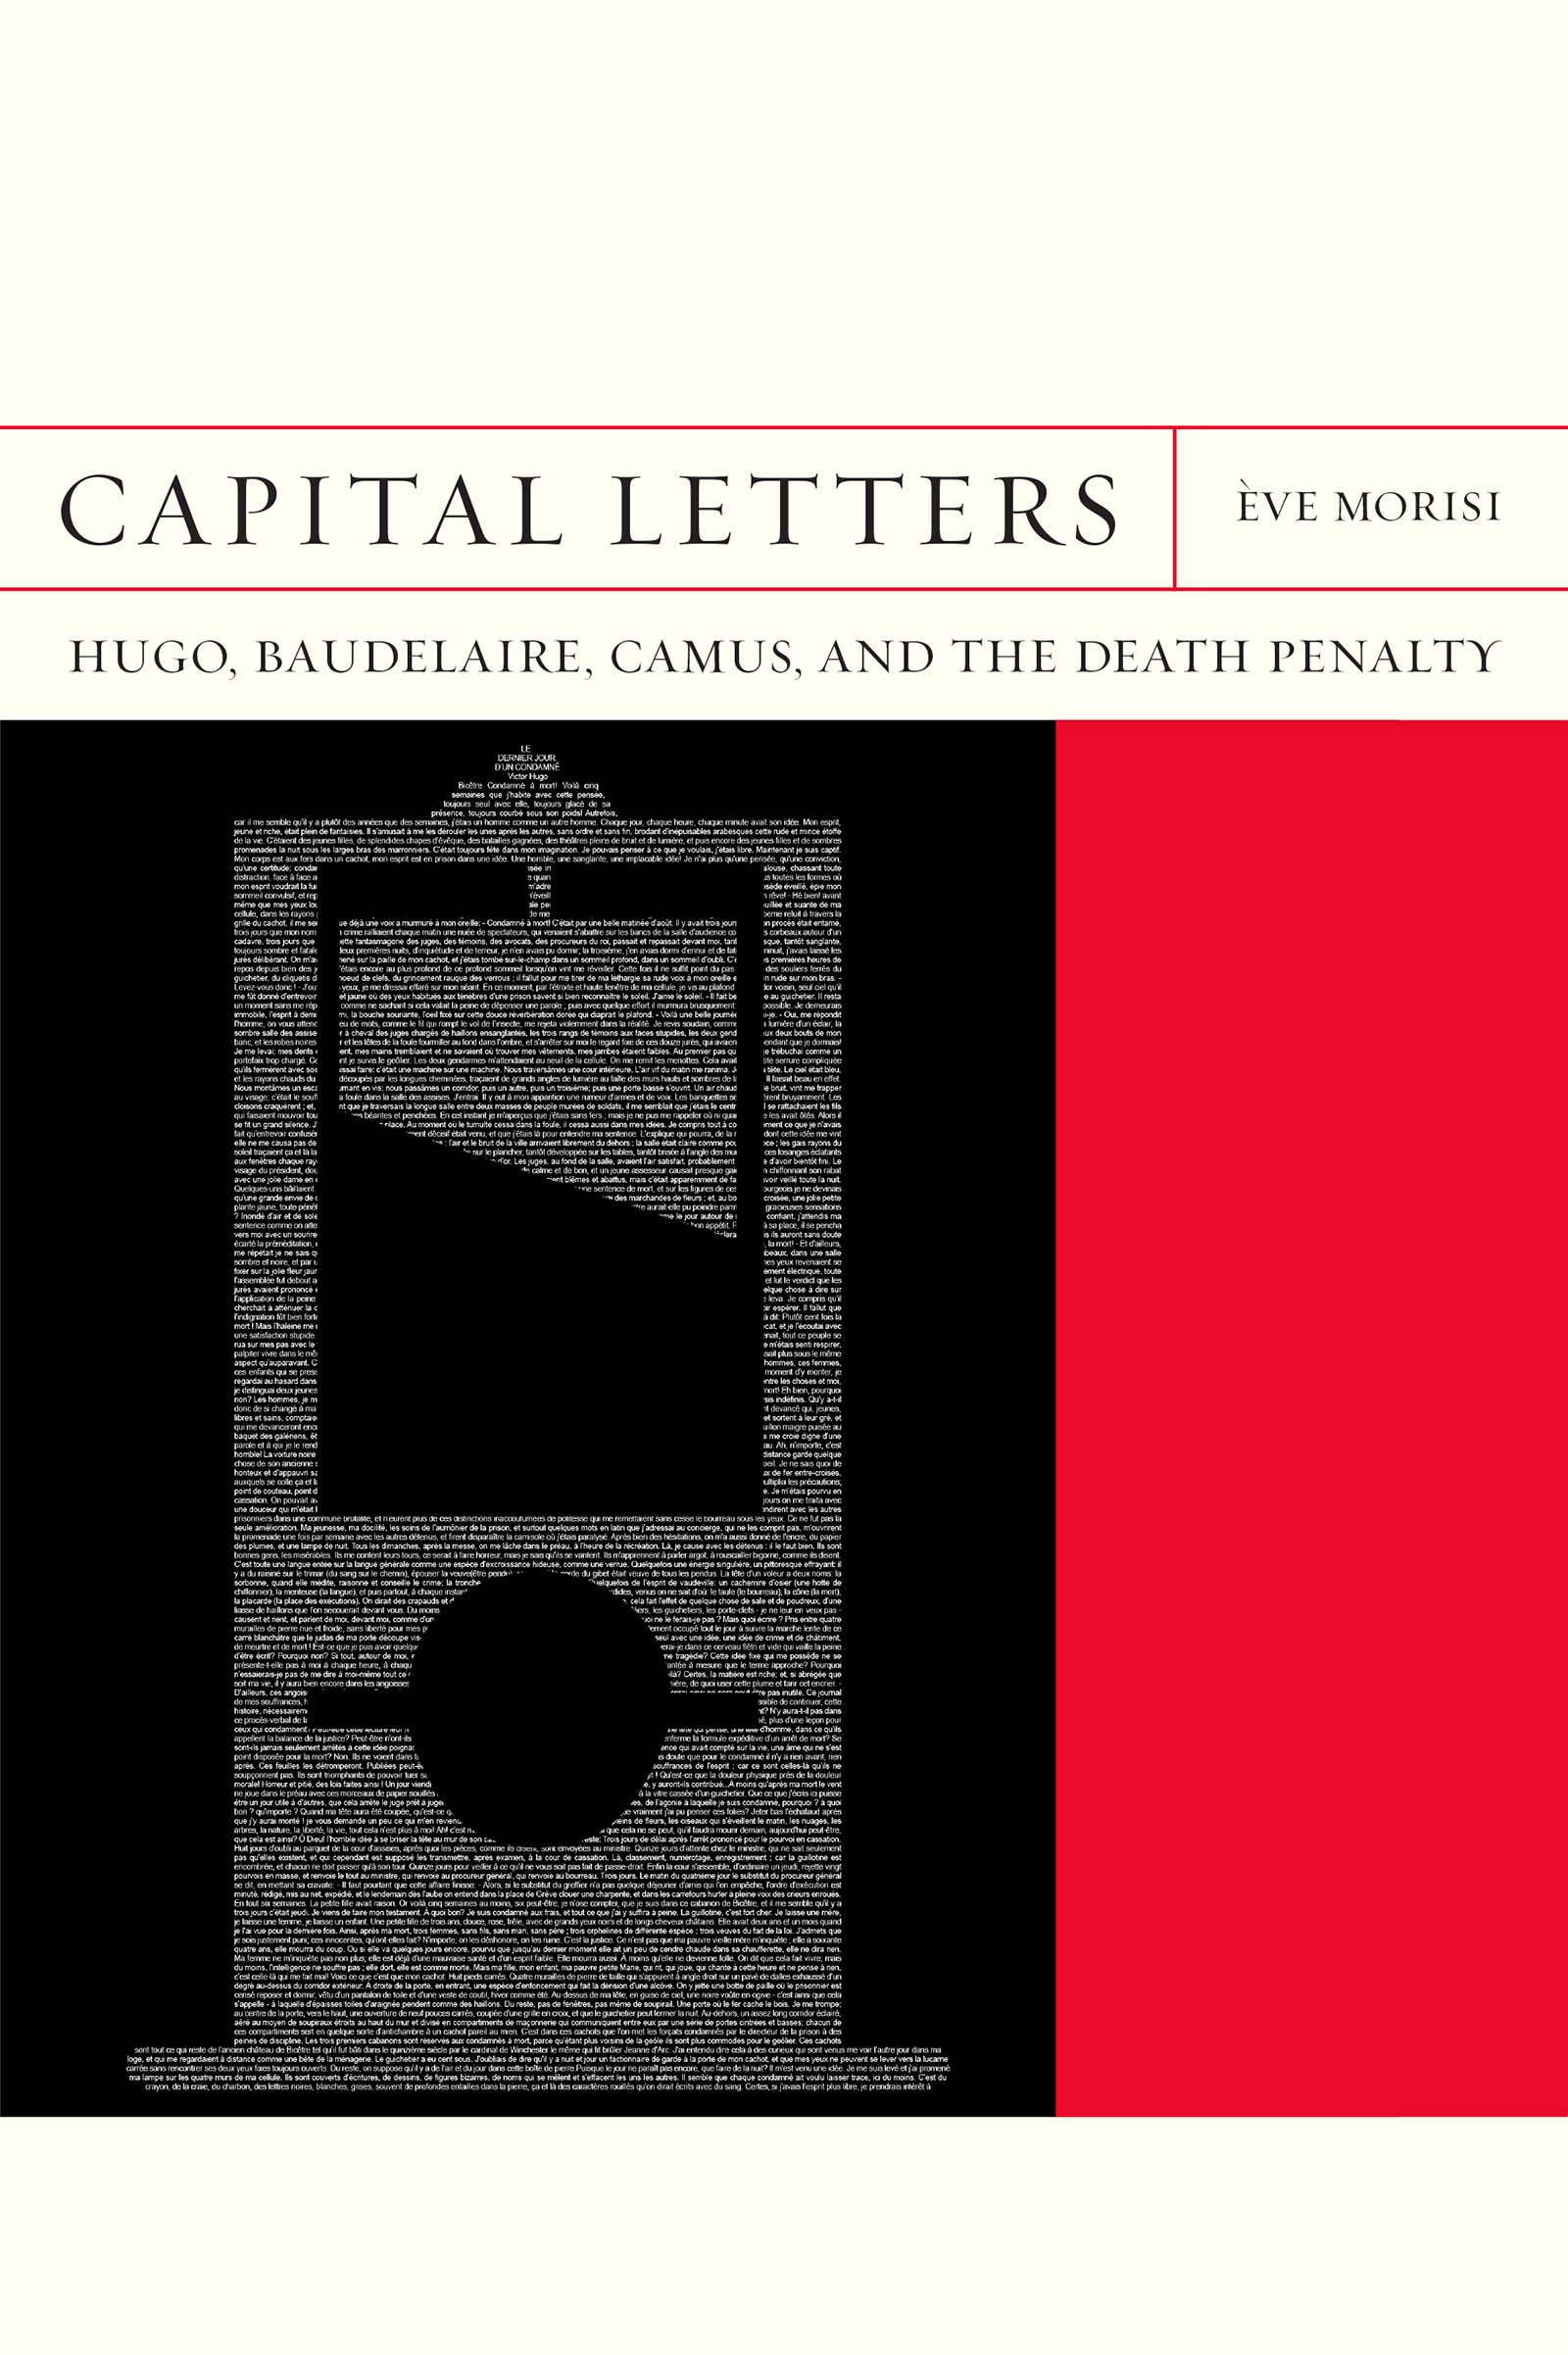 È. Morisi, Capital Letters: Hugo, Baudelaire, Camus and the Death Penalty